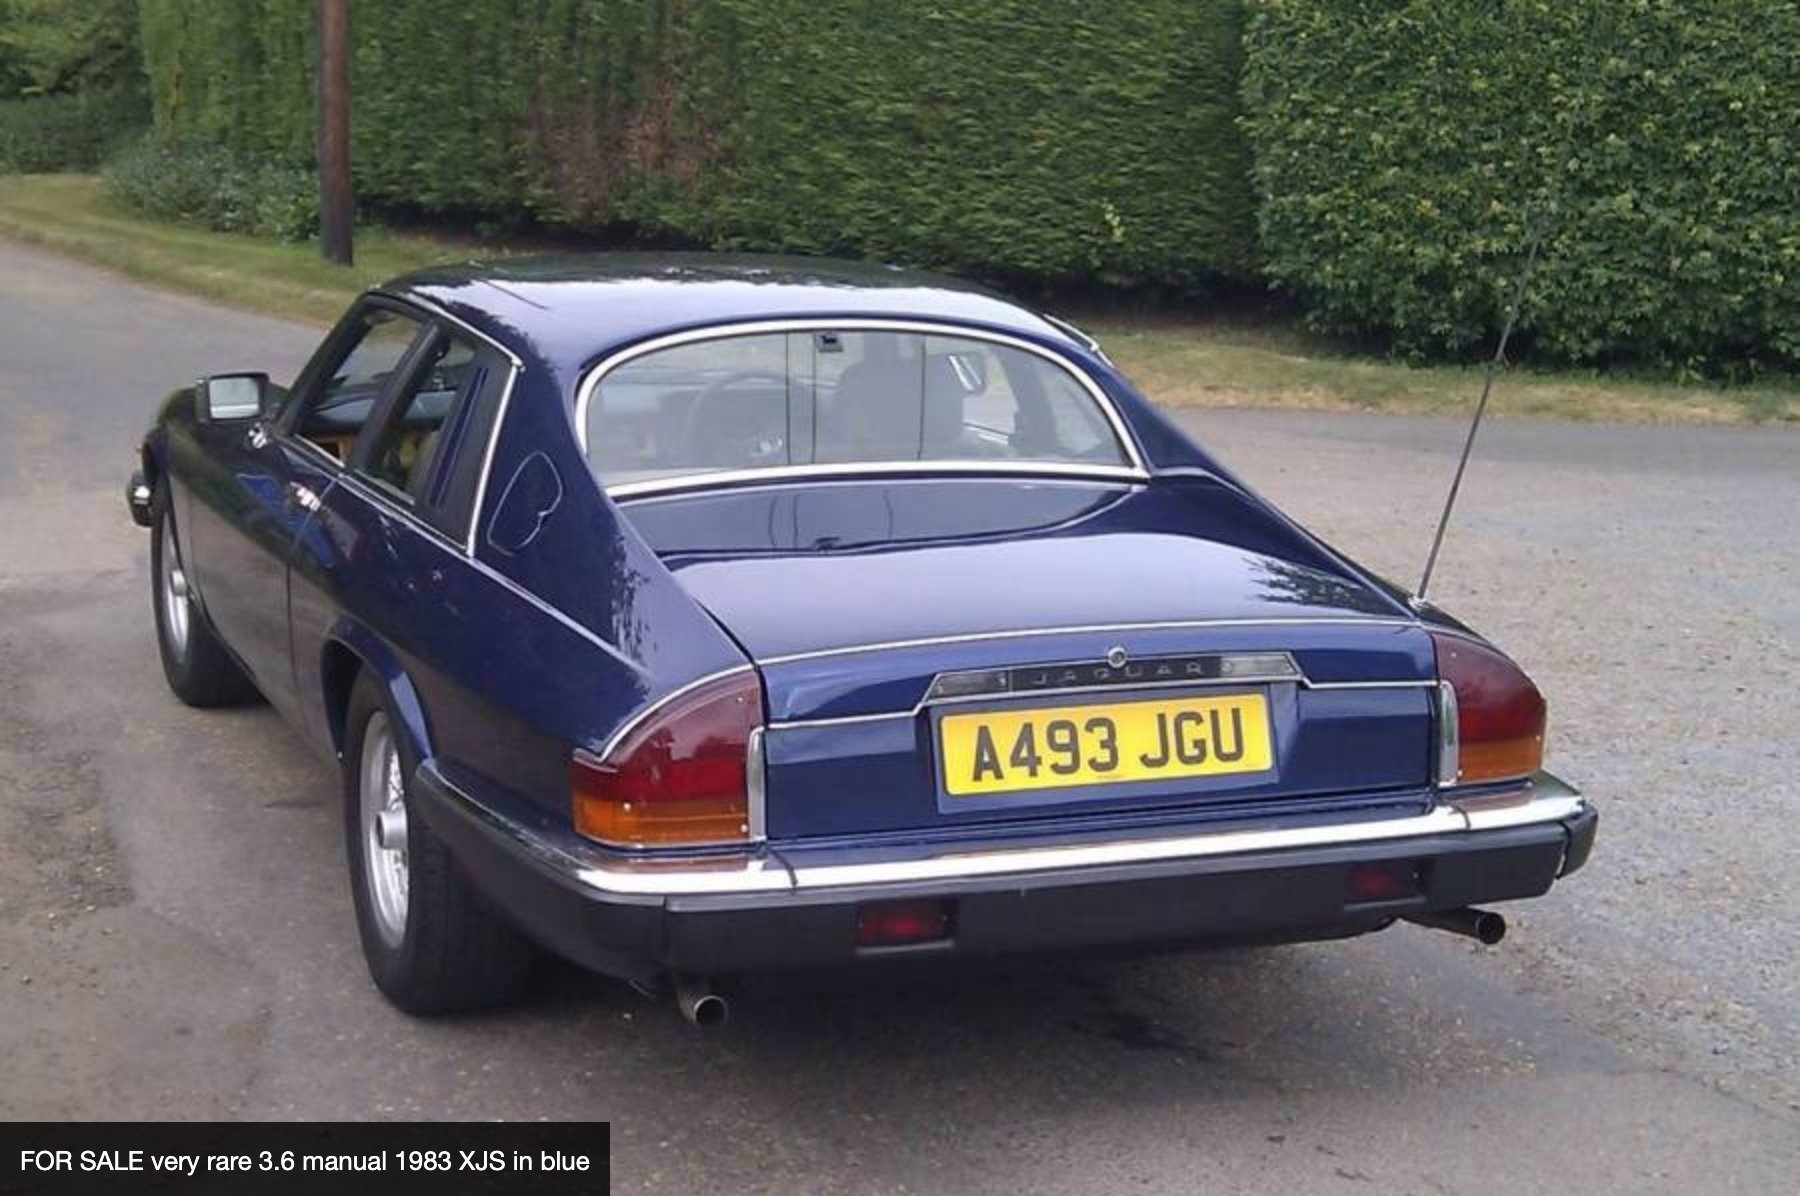 FOR SALE very rare 3.6 manual 1983 XJS in blue For Sale (picture 2 of 6)